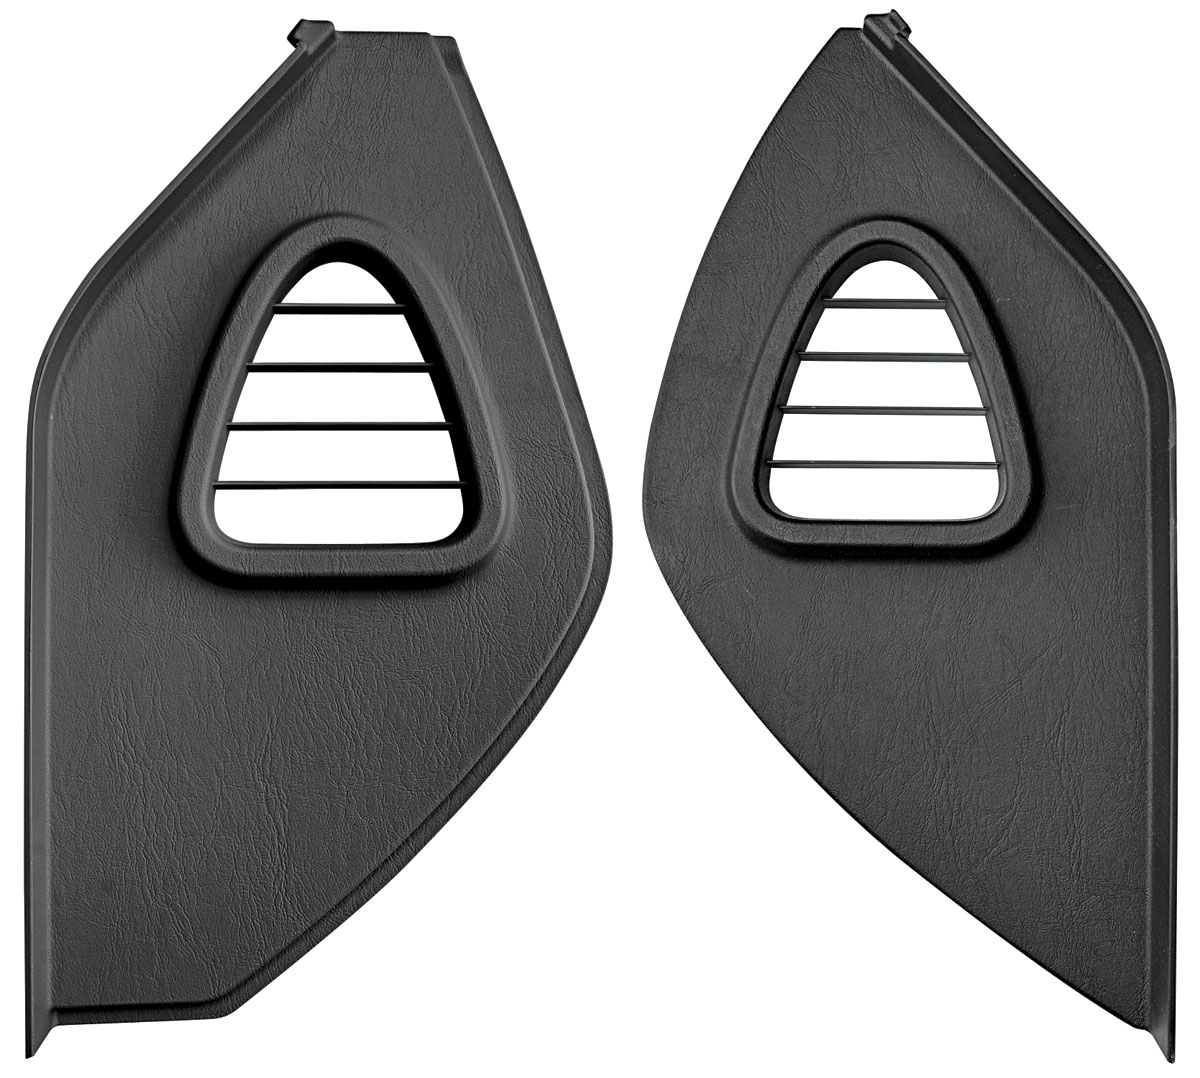 Cover, Dash Pad Side, 2004-09 XLR, Ebony, Pair